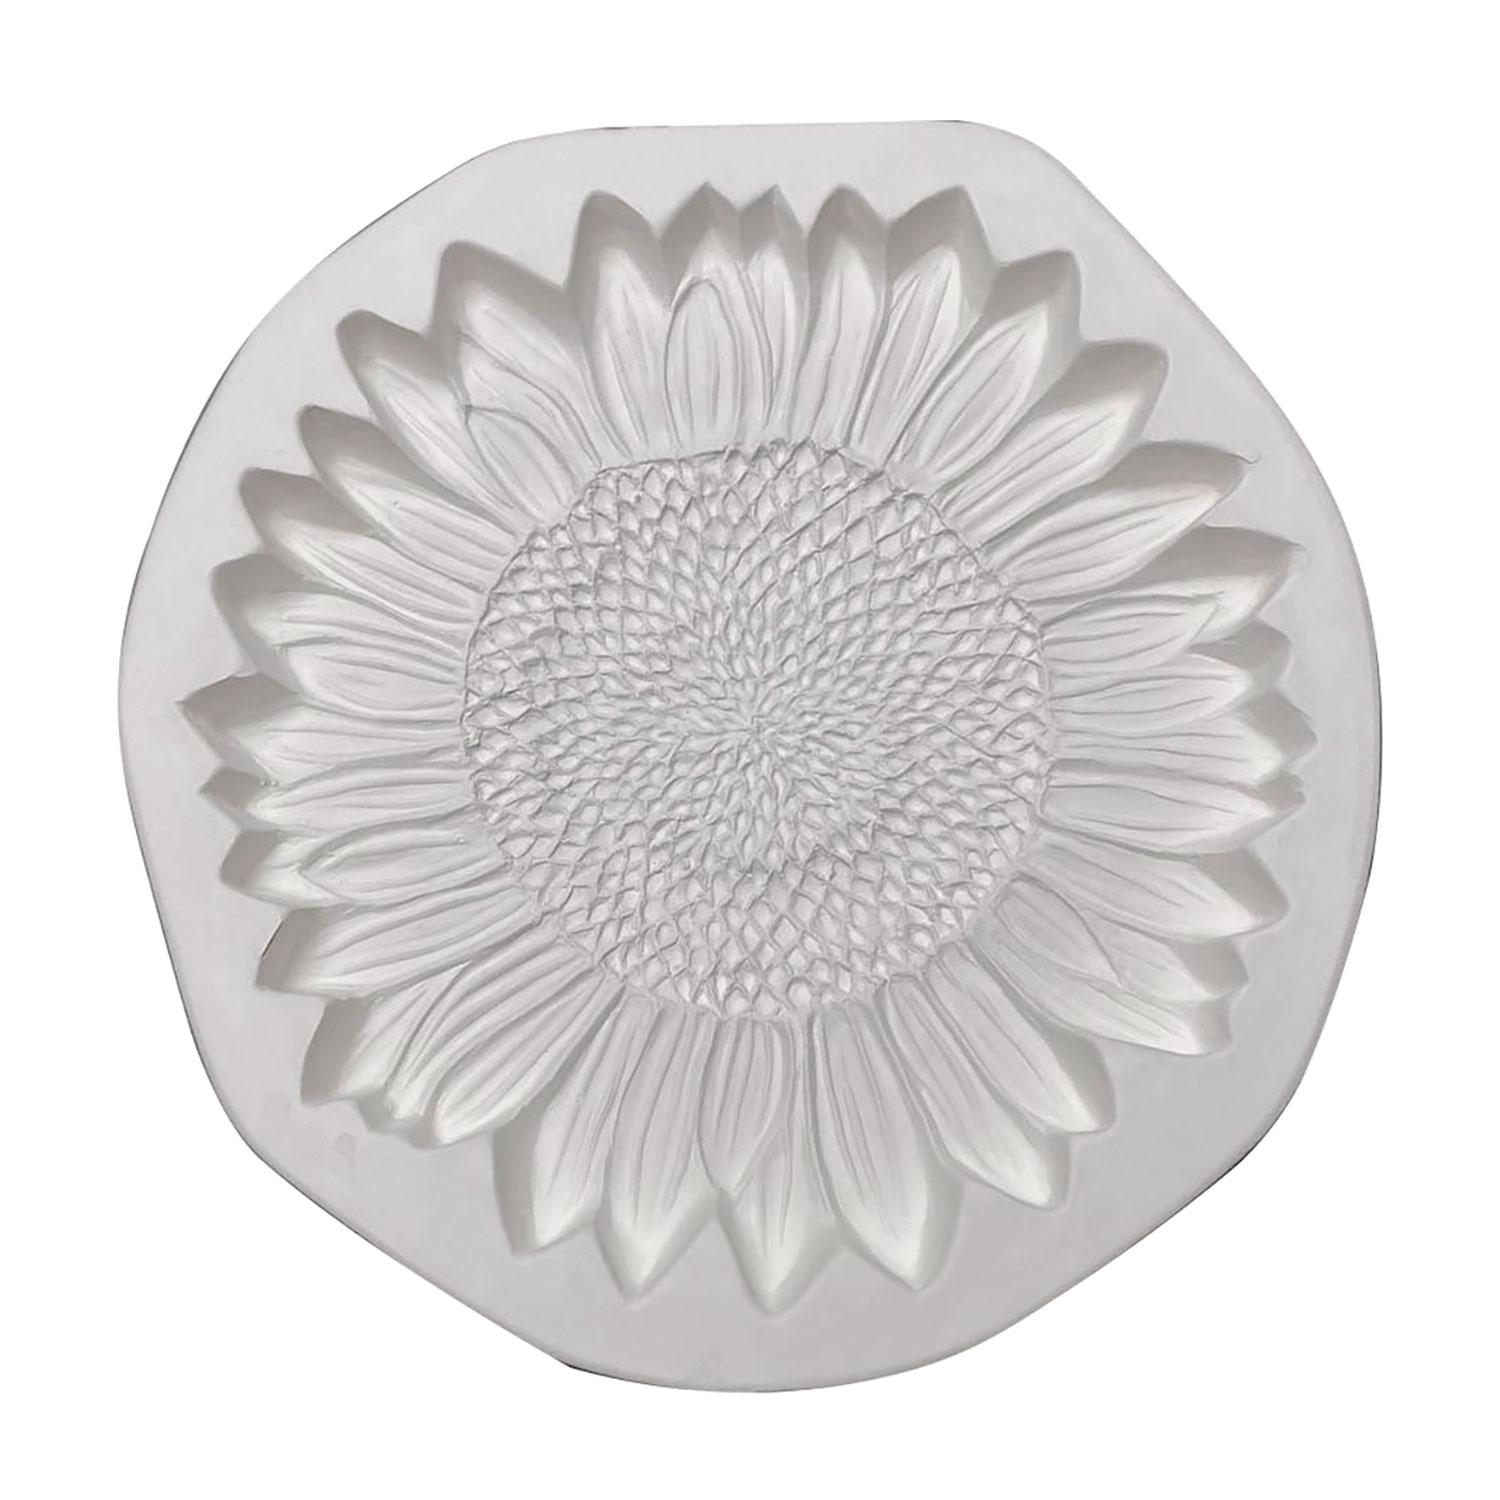 Large Sunflower Casting Mold